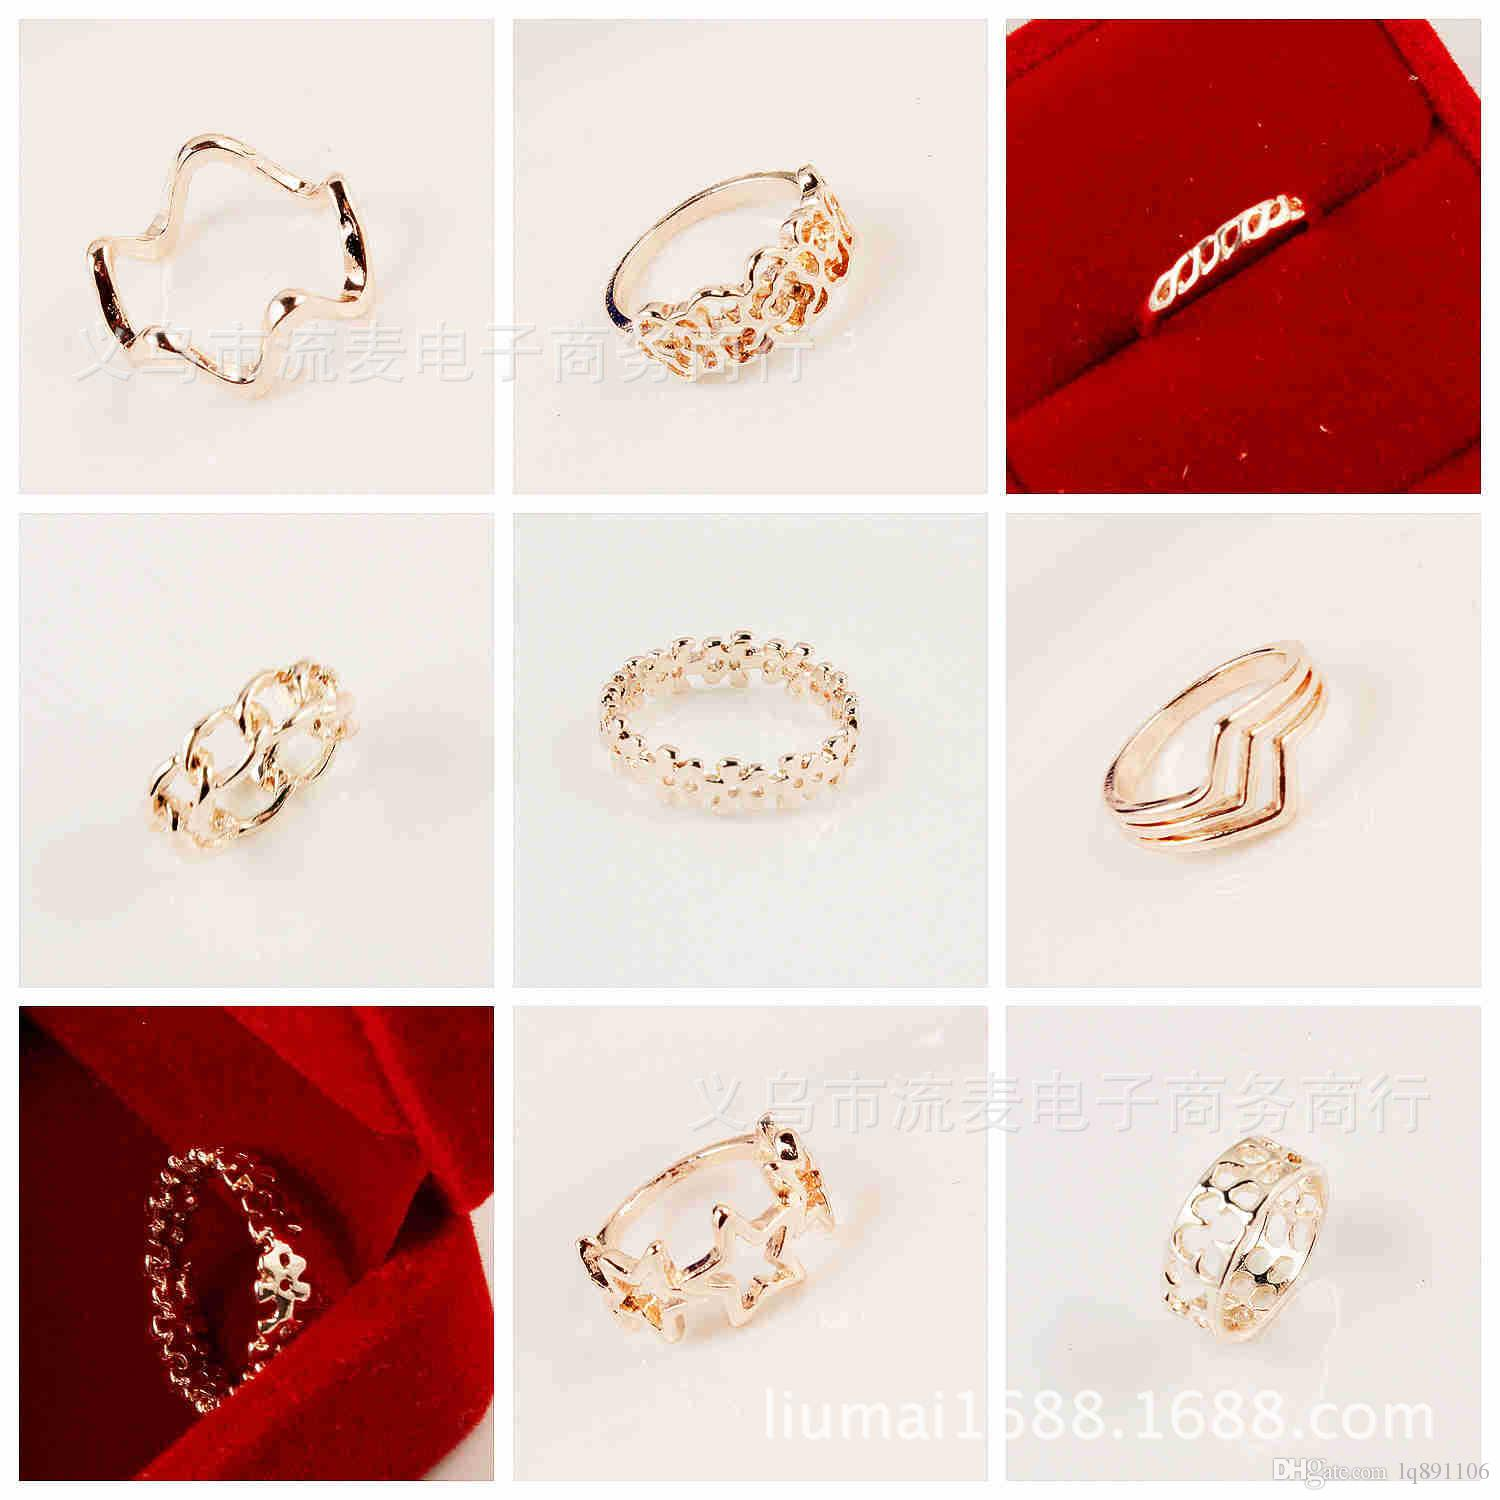 plating dhgate sterns from new flower love fashion dubai product colors of star wedding series harvest rings pandahood com